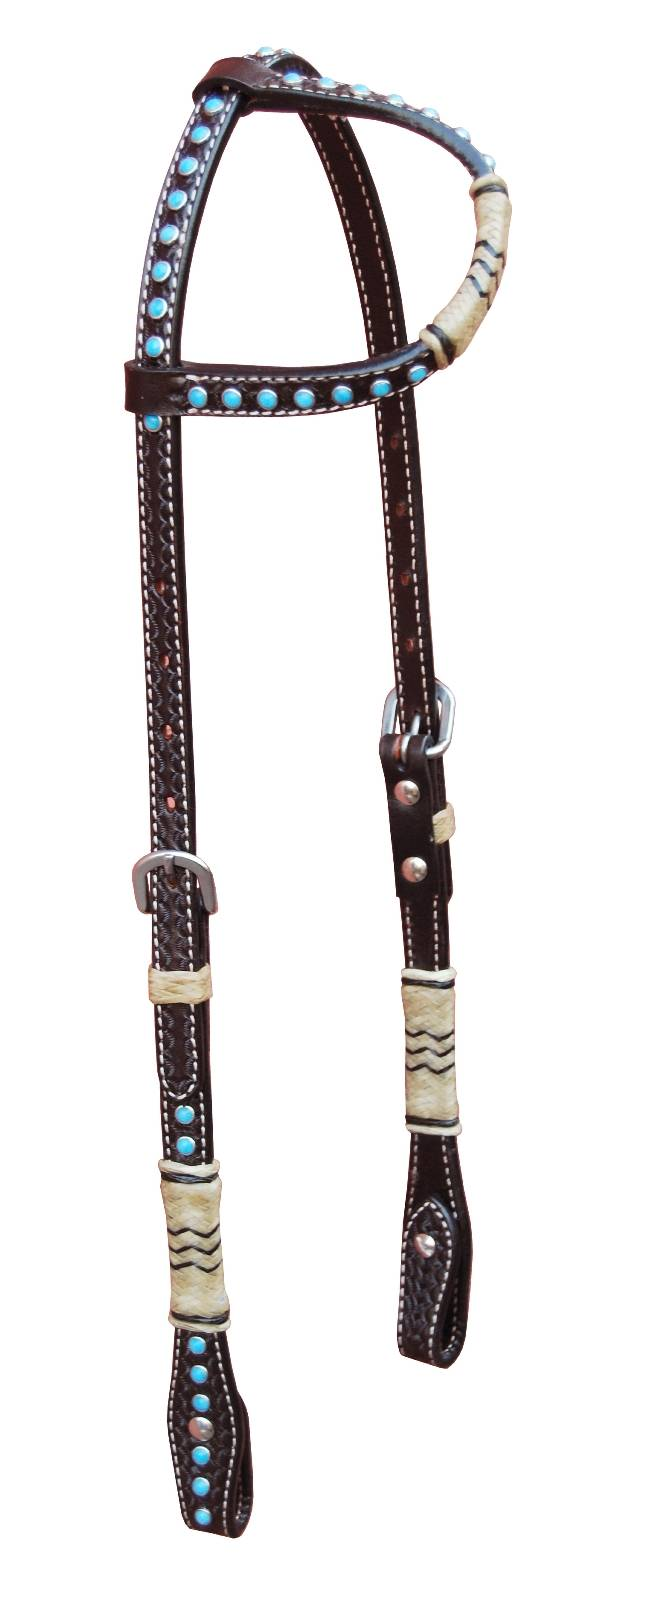 Turn-Two Equine OE Headstall Tucson